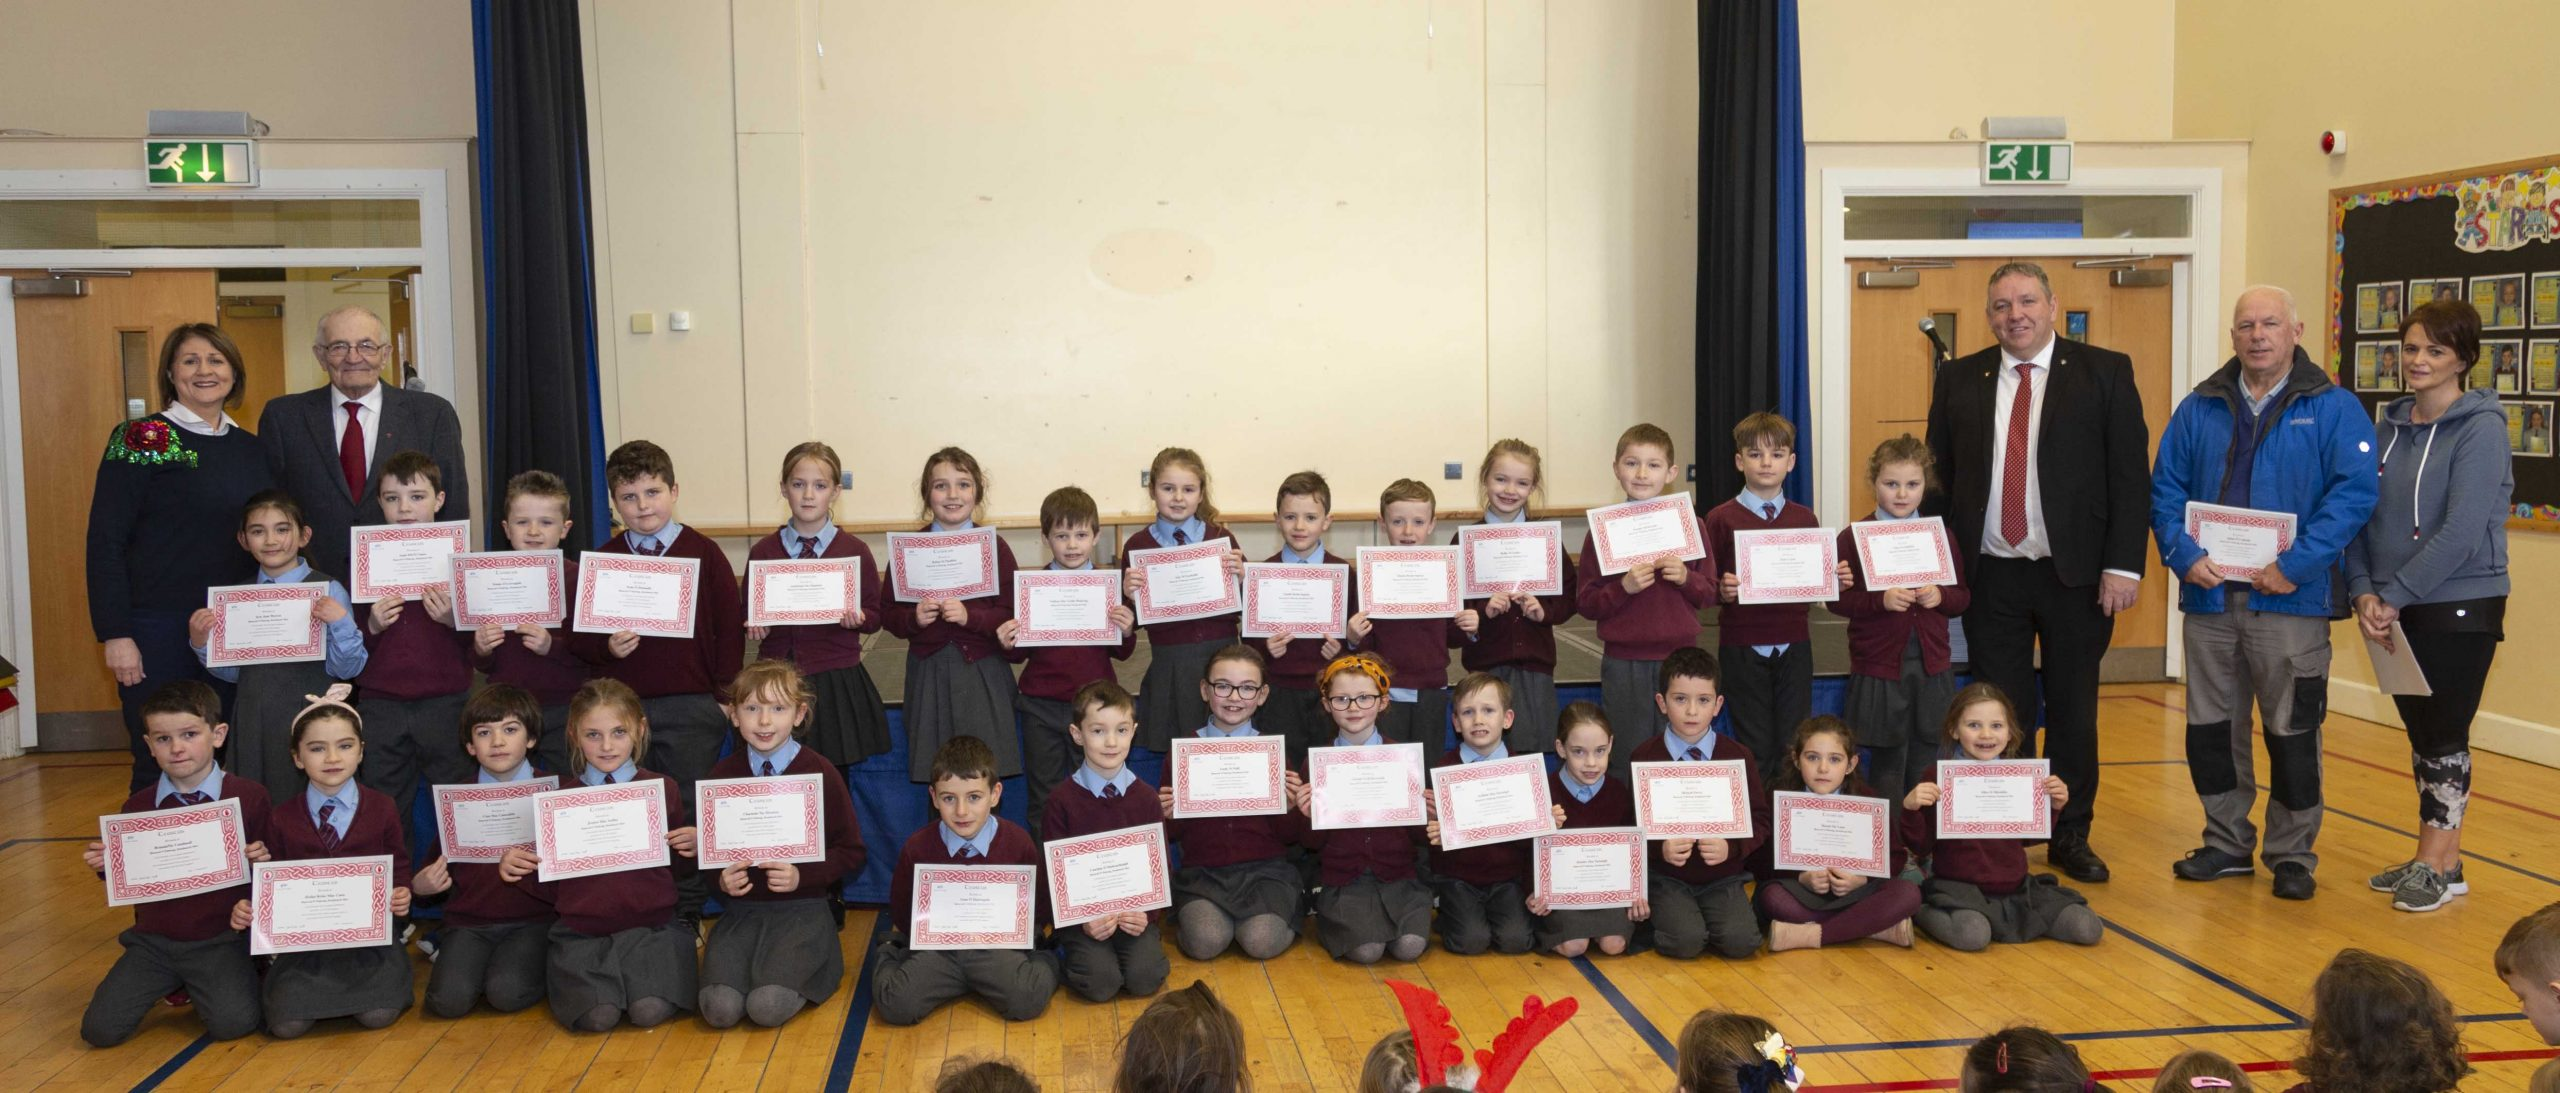 St. Patrick's Primary School, Donaghmore, Learn Irish with Tyrone GAA